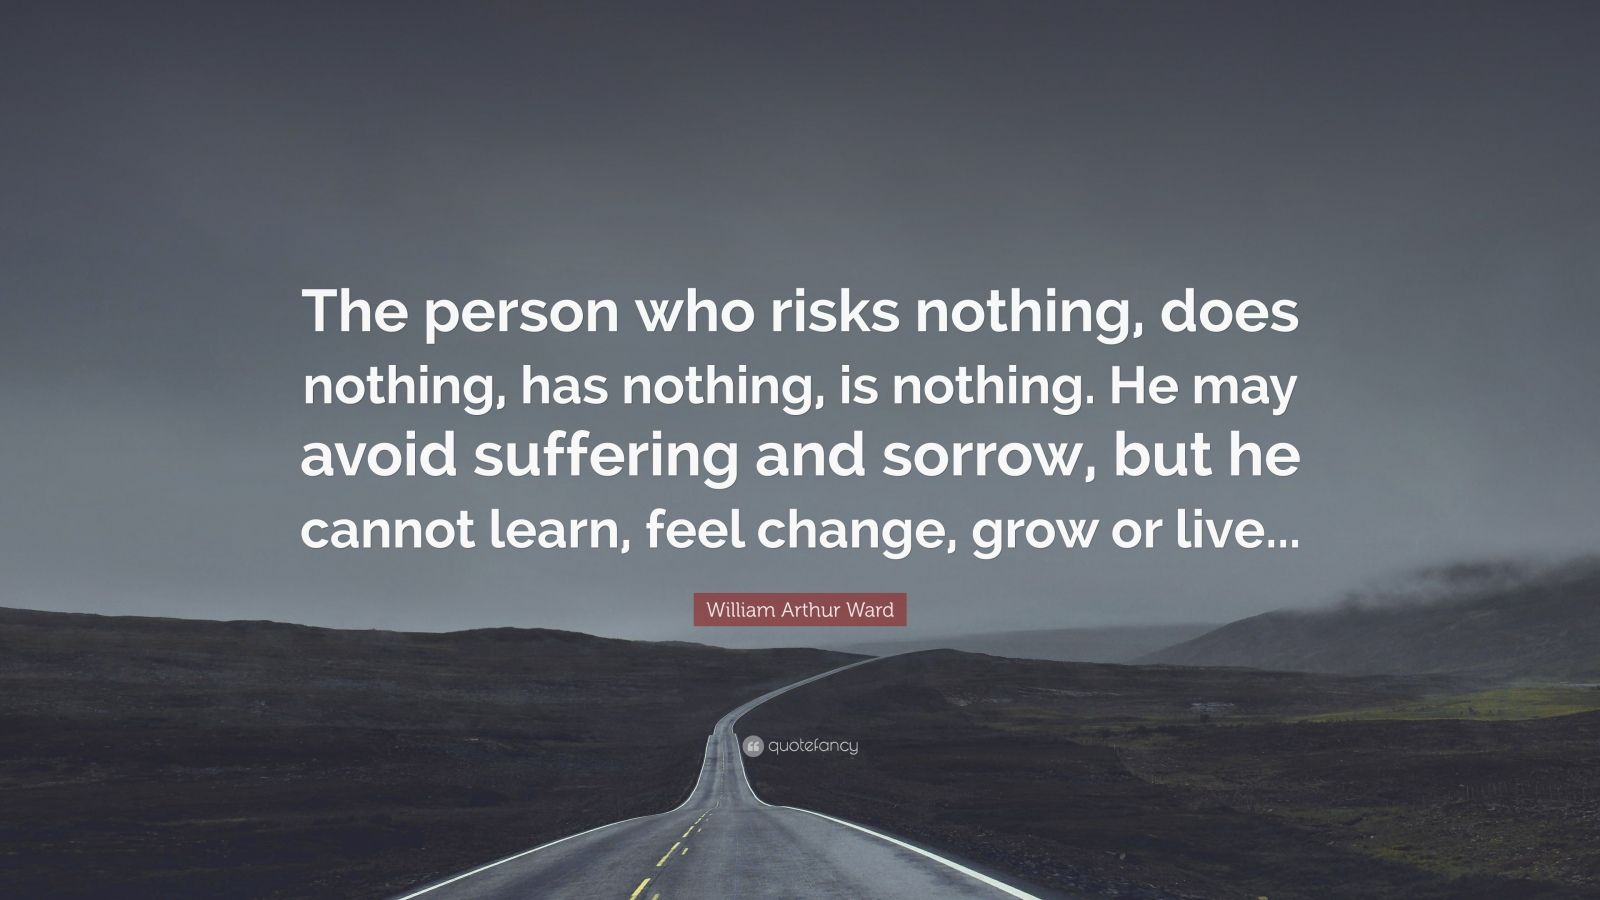 "William Arthur Ward Quote: ""The person who risks nothing, does nothing, has nothing, is nothing. He may avoid suffering and sorrow, but he cannot learn, feel change, grow or live..."""